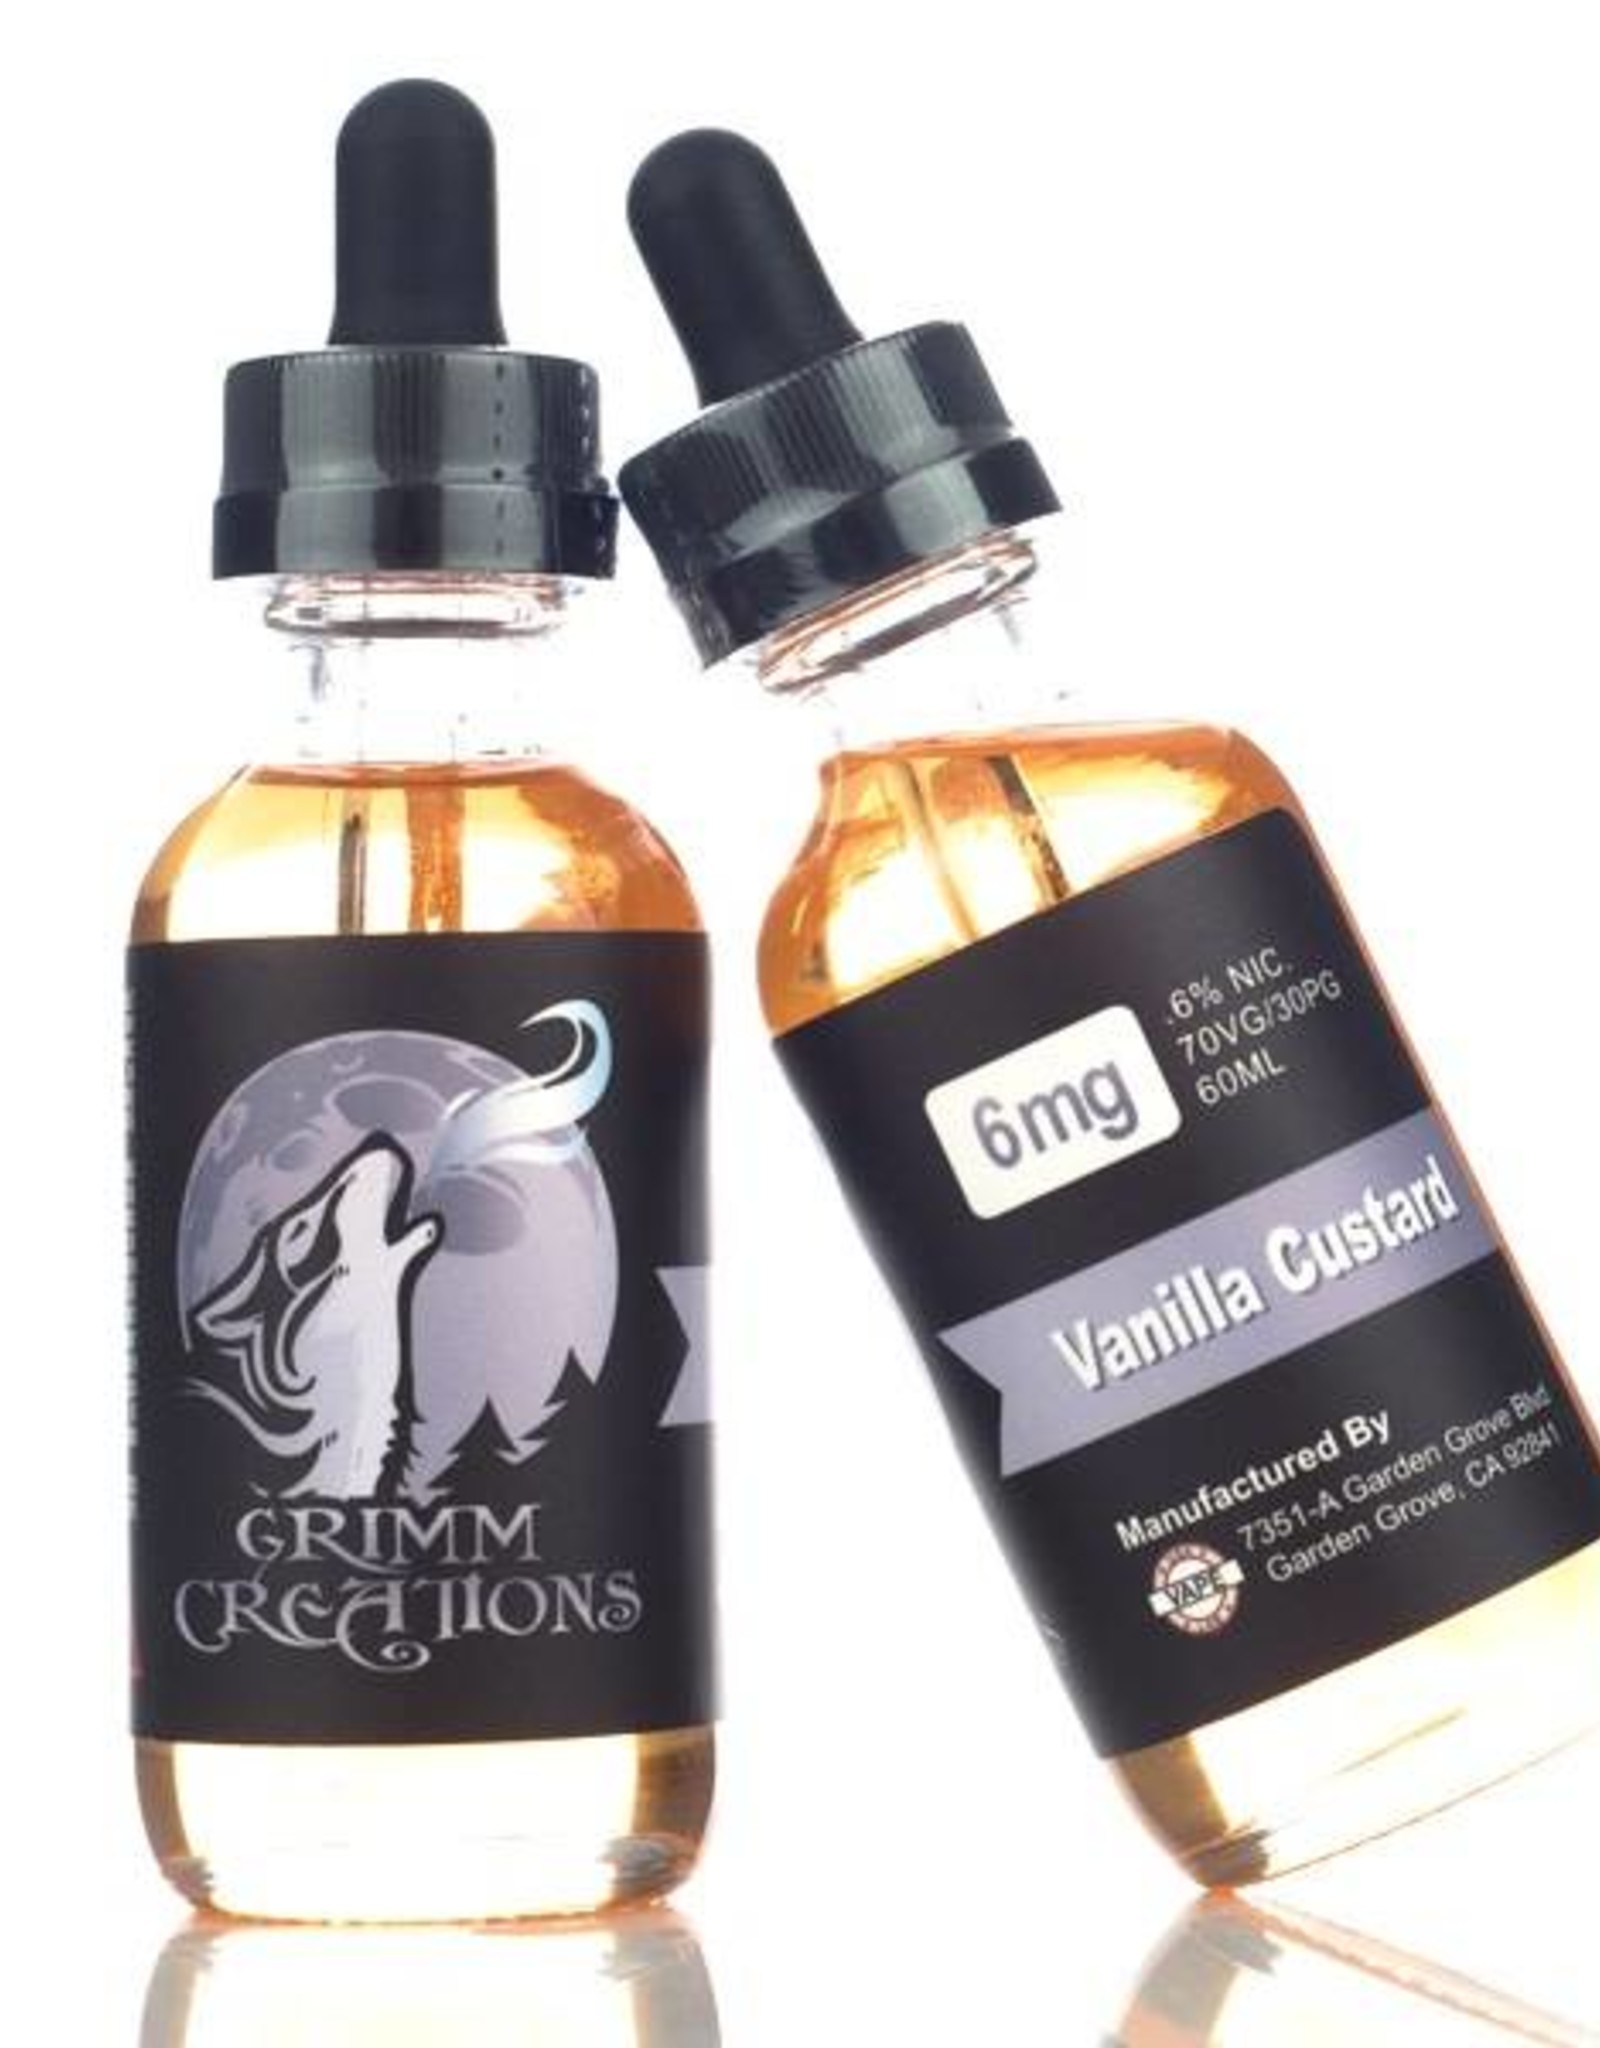 GRIMM CREATIONS VANILLA CUSTARD BY GRIMM CREATIONS(60ml)